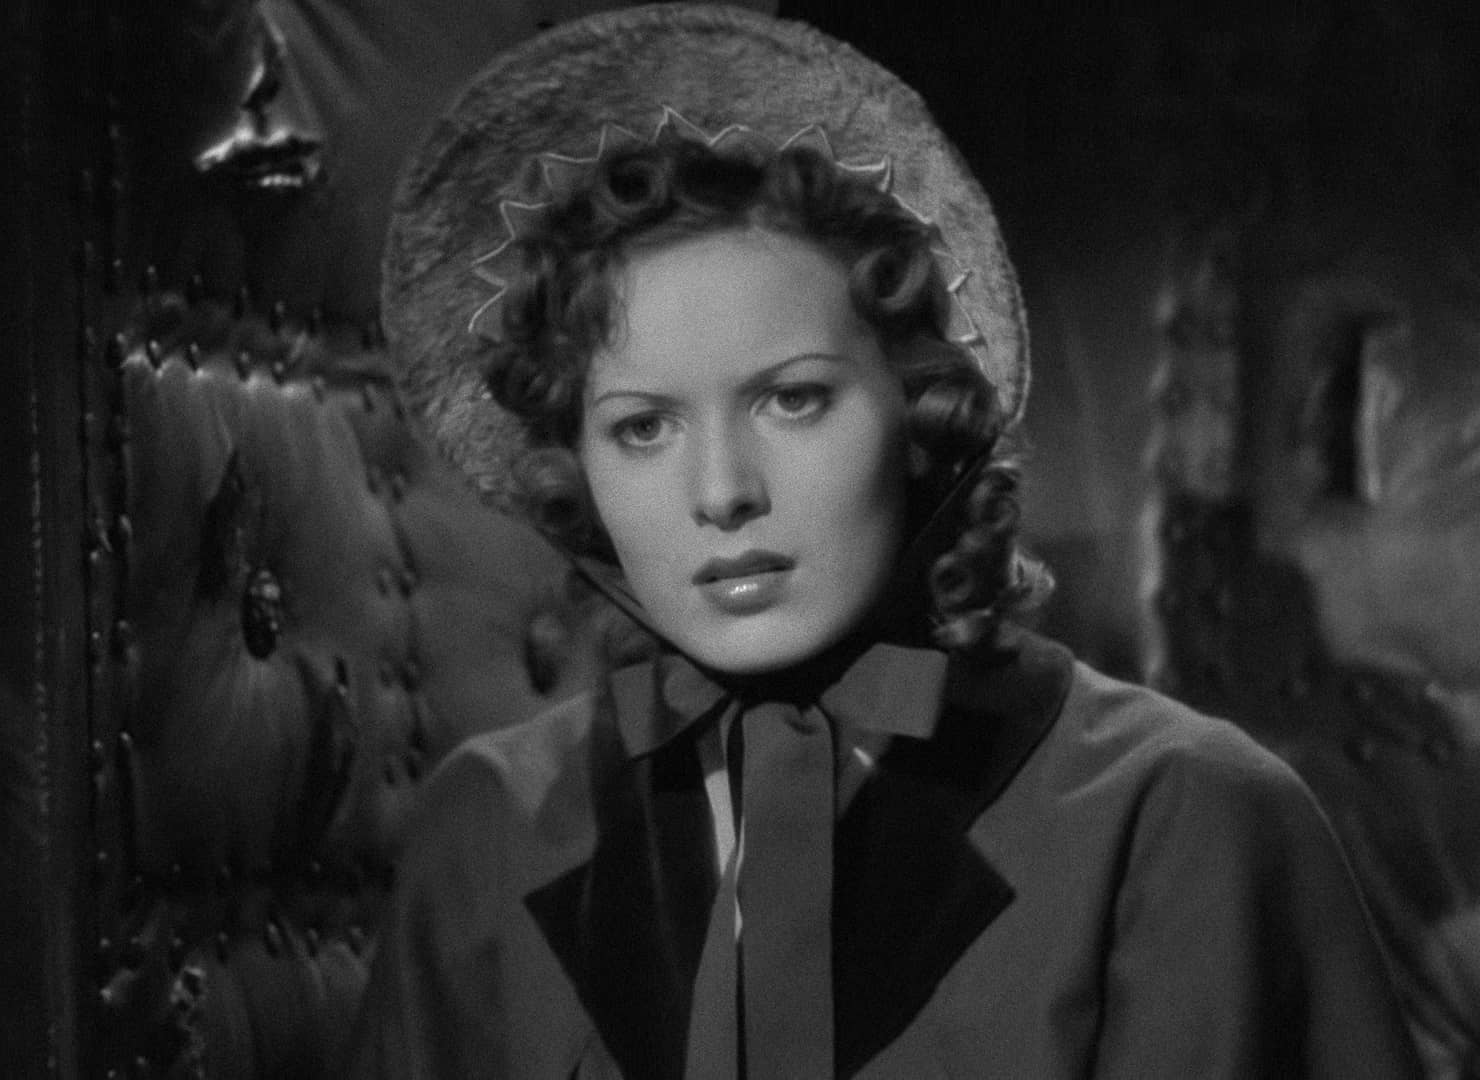 Maureen O'Hara in Jamaica Inn (1939, dir. Alfred Hitchcock) UK Arrow Blu-ray